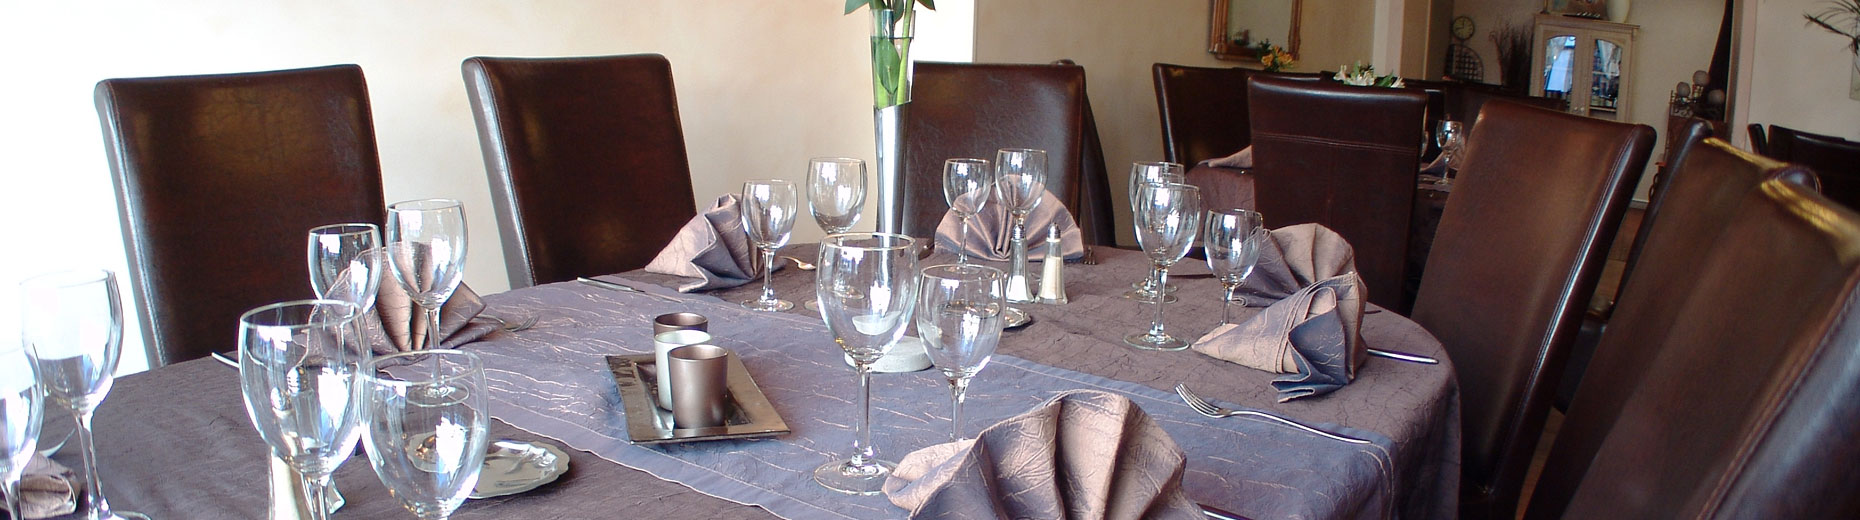 table-restaurant-1860x520